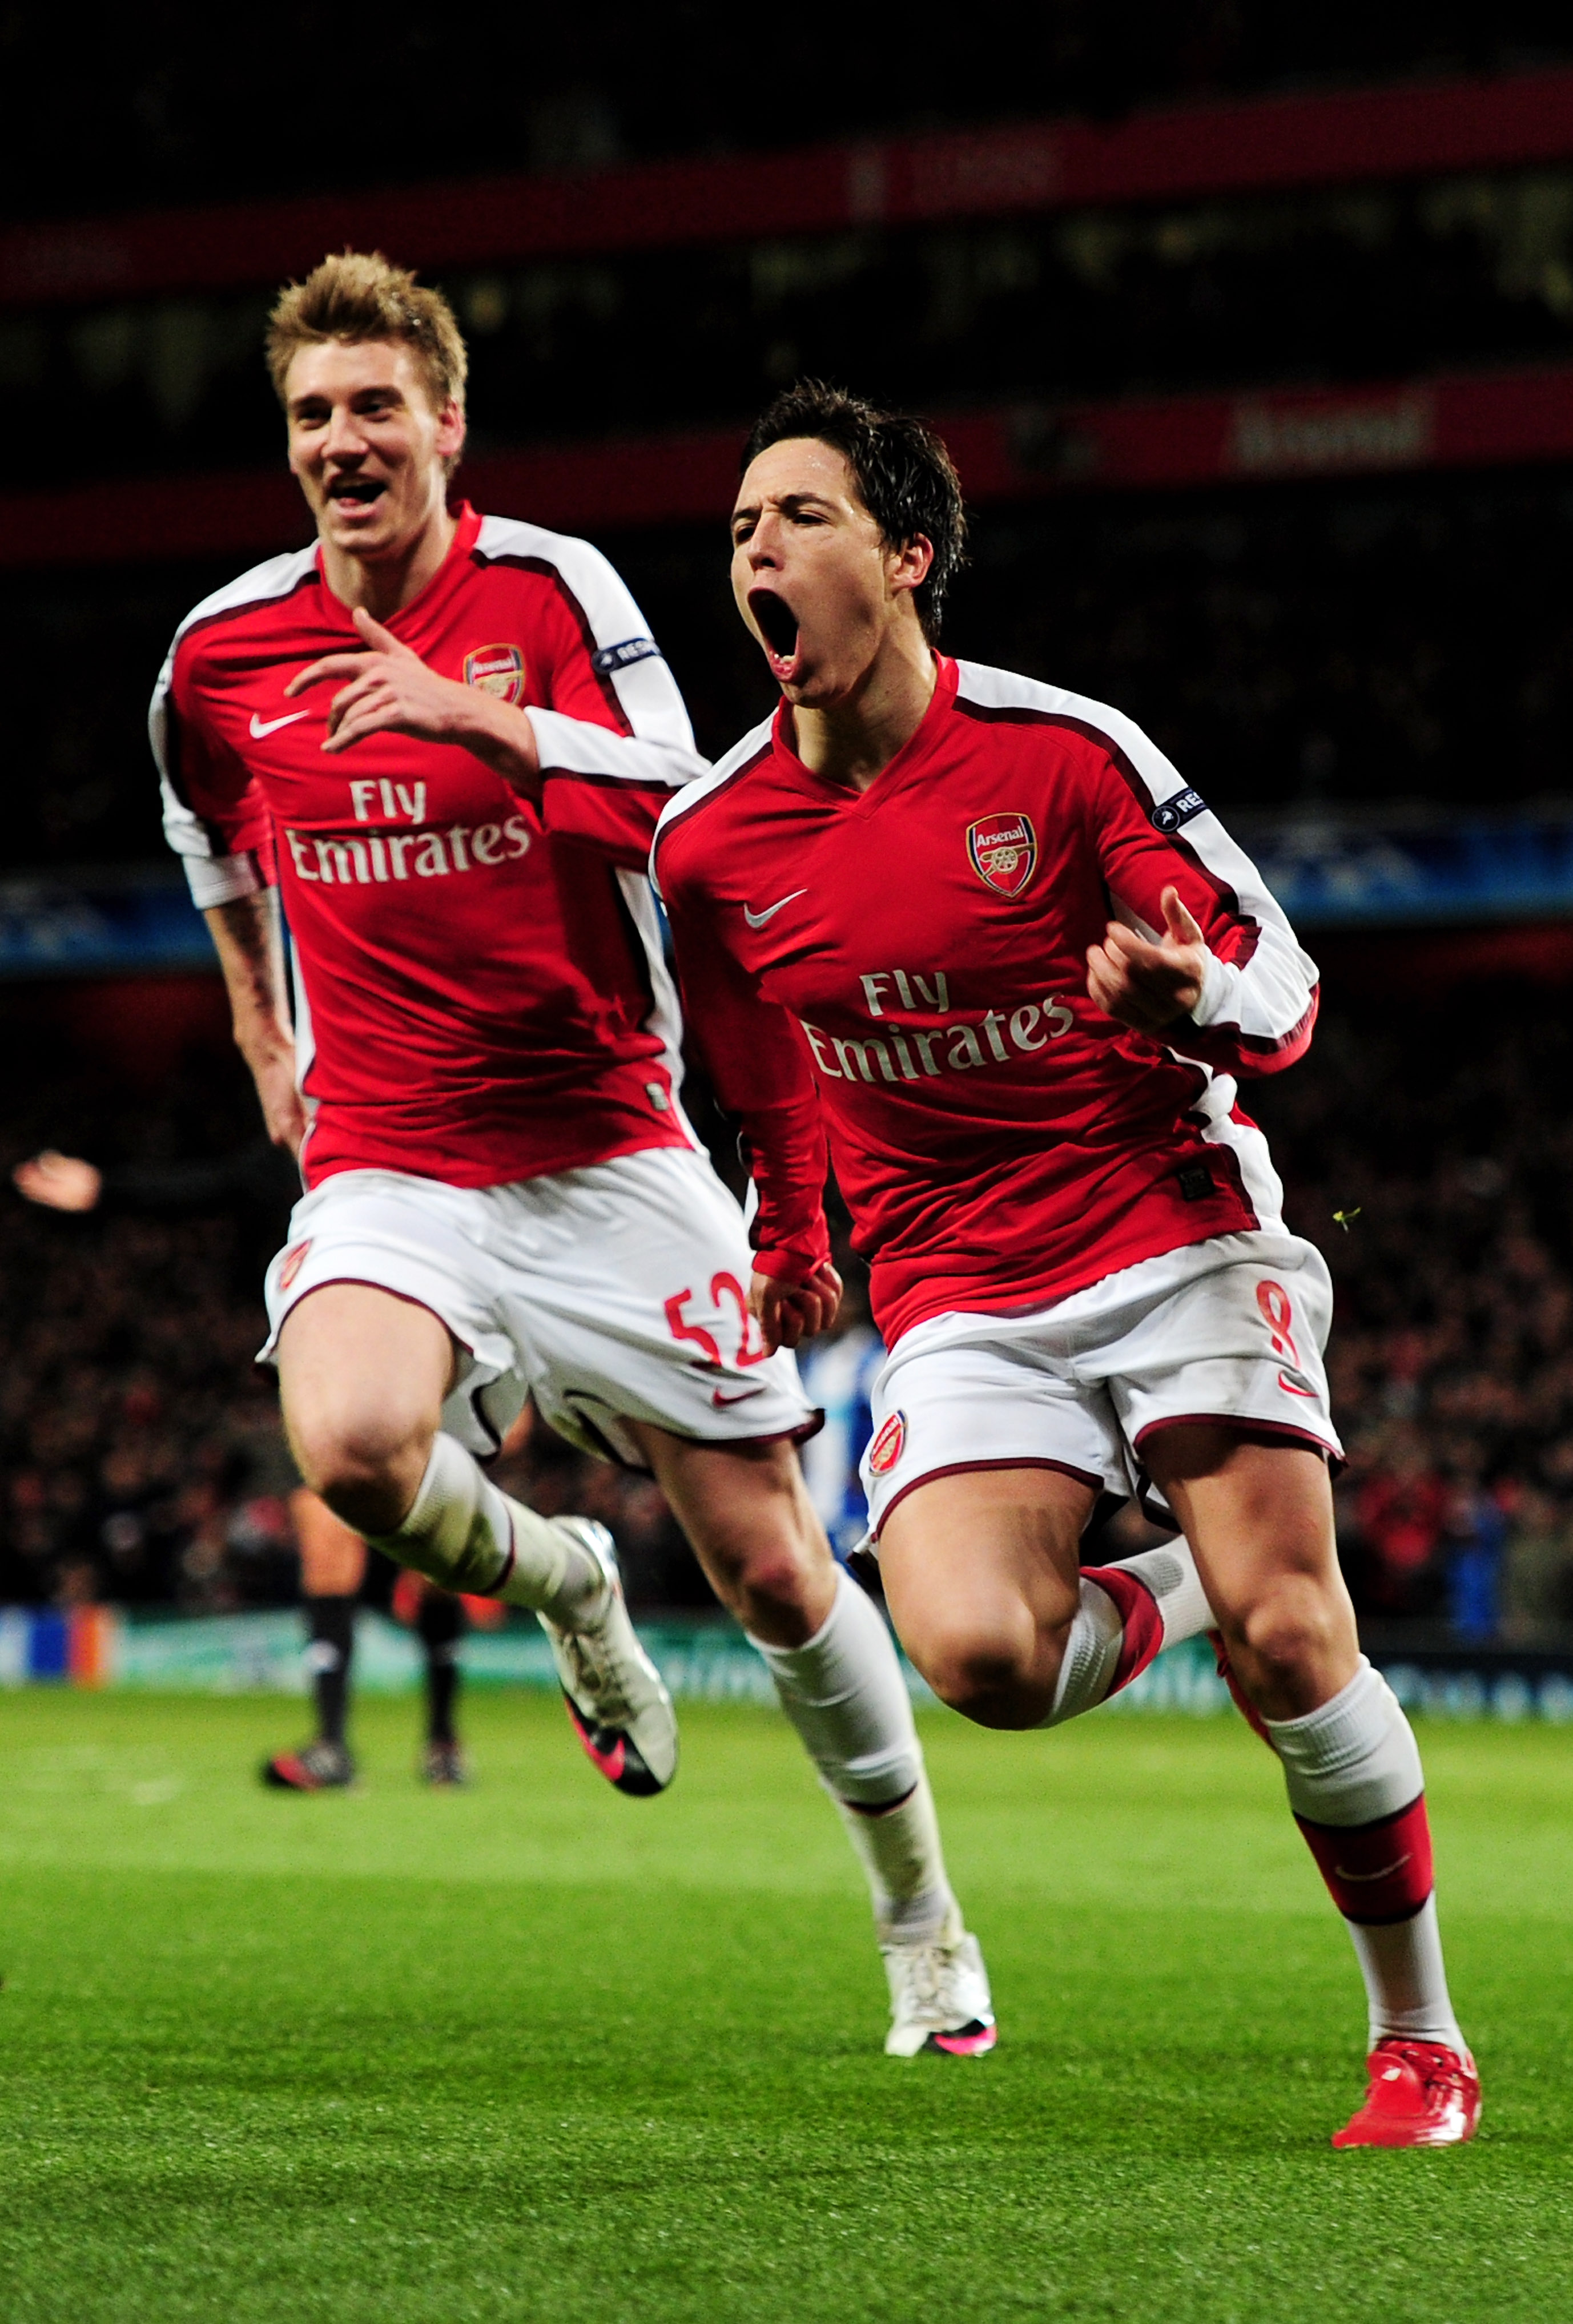 LONDON, ENGLAND - MARCH 09:  Samir Nasri (R) of Arsenal celebrates with teammate Nicklas Bendtner after scoring his team's third goal during the UEFA Champions League round of 16 match between Arsenal and FC Porto at the Emirates Stadium on March 9, 2010